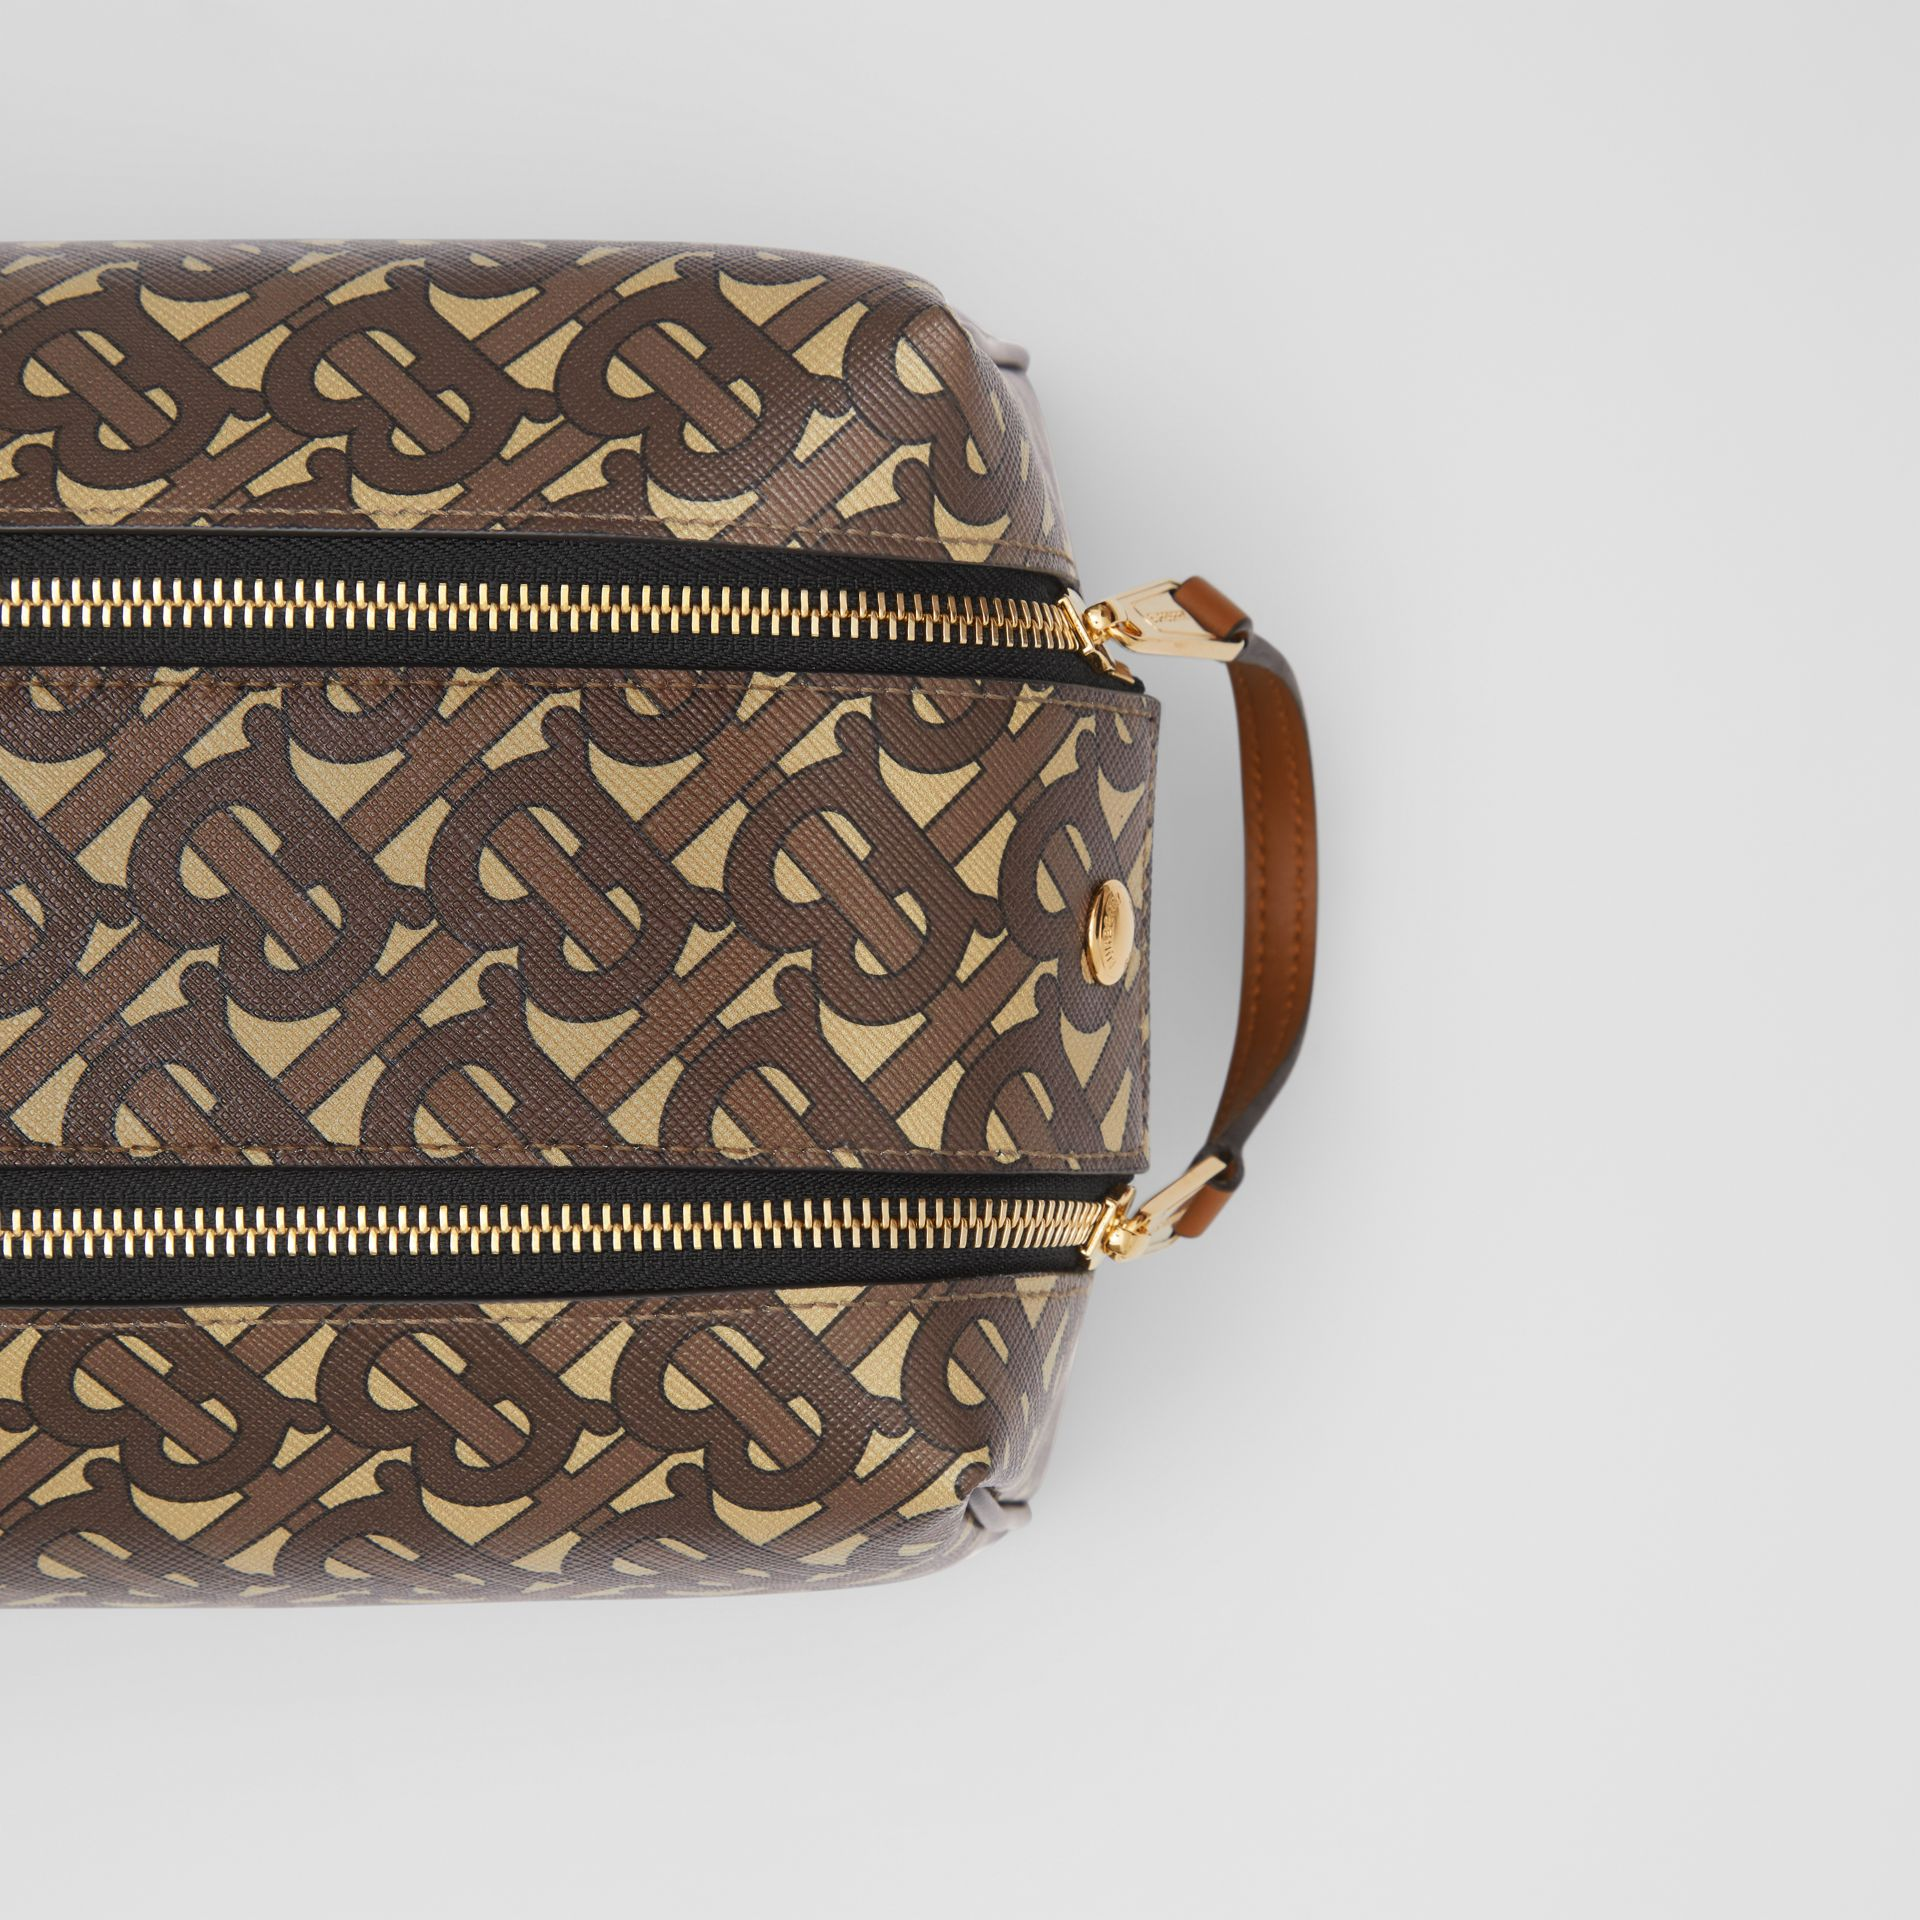 Monogram Print E-canvas Travel Pouch in Bridle Brown | Burberry United Kingdom - gallery image 1